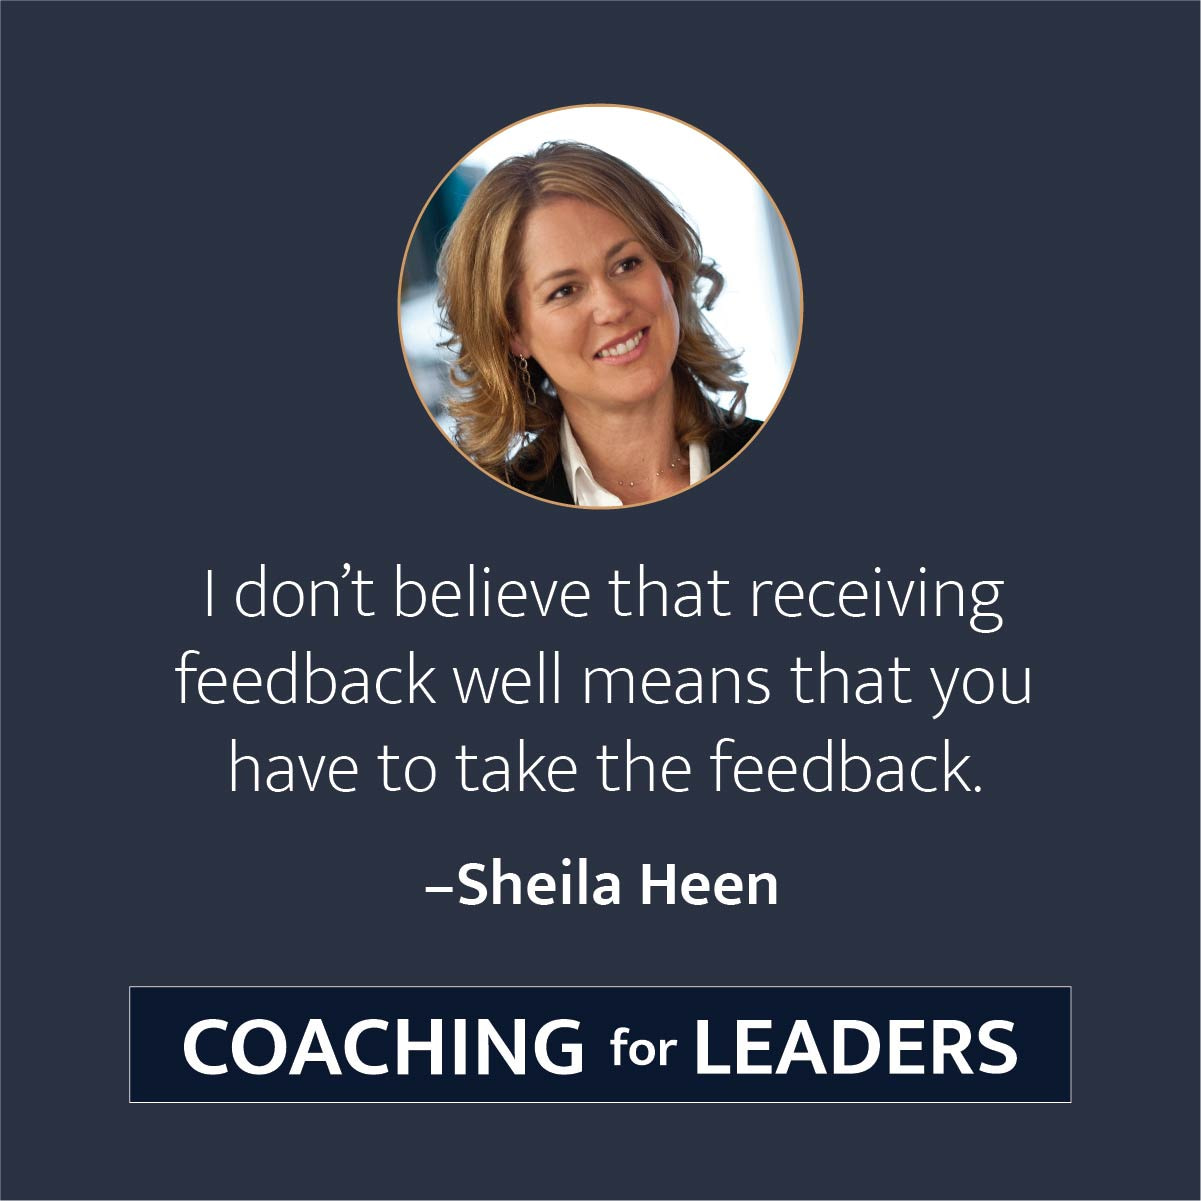 I don't believe that receiving feedback well means that you have to take the feedback.